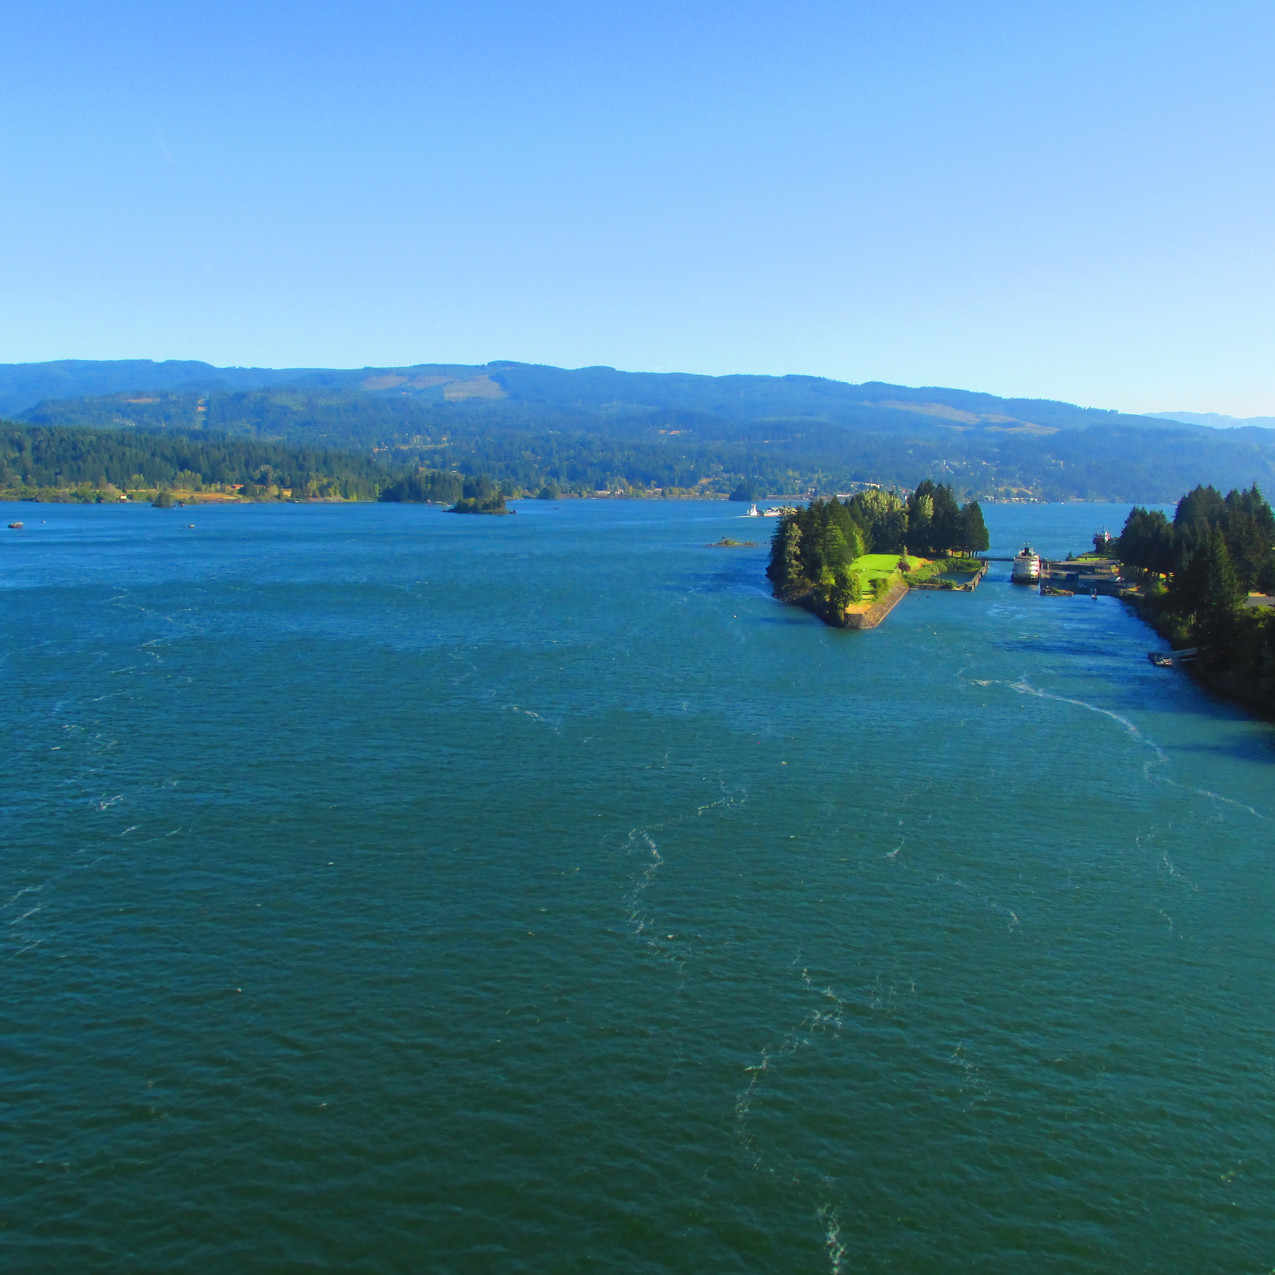 I looked forward to hiking across the Bridge of the Gods and seeing the Columbia River for a while.